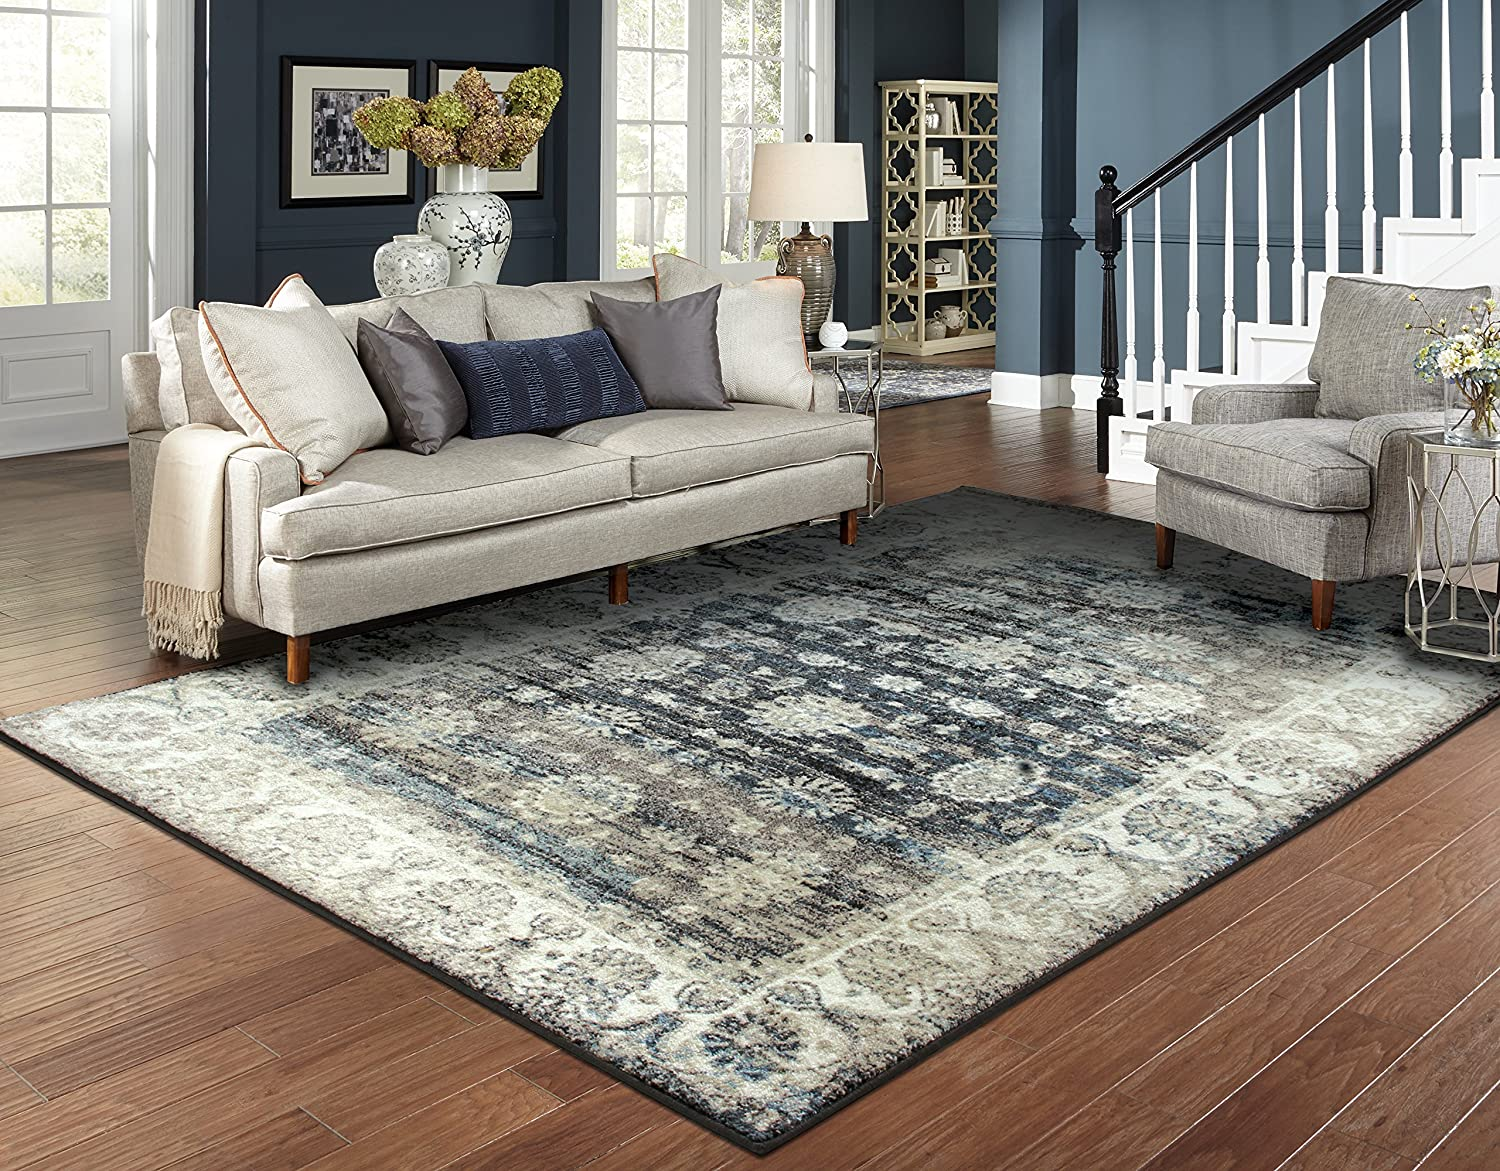 Traditional Distressed Area Rugs for Living Room 5x7 Clearance Beige 5x8  Rugs